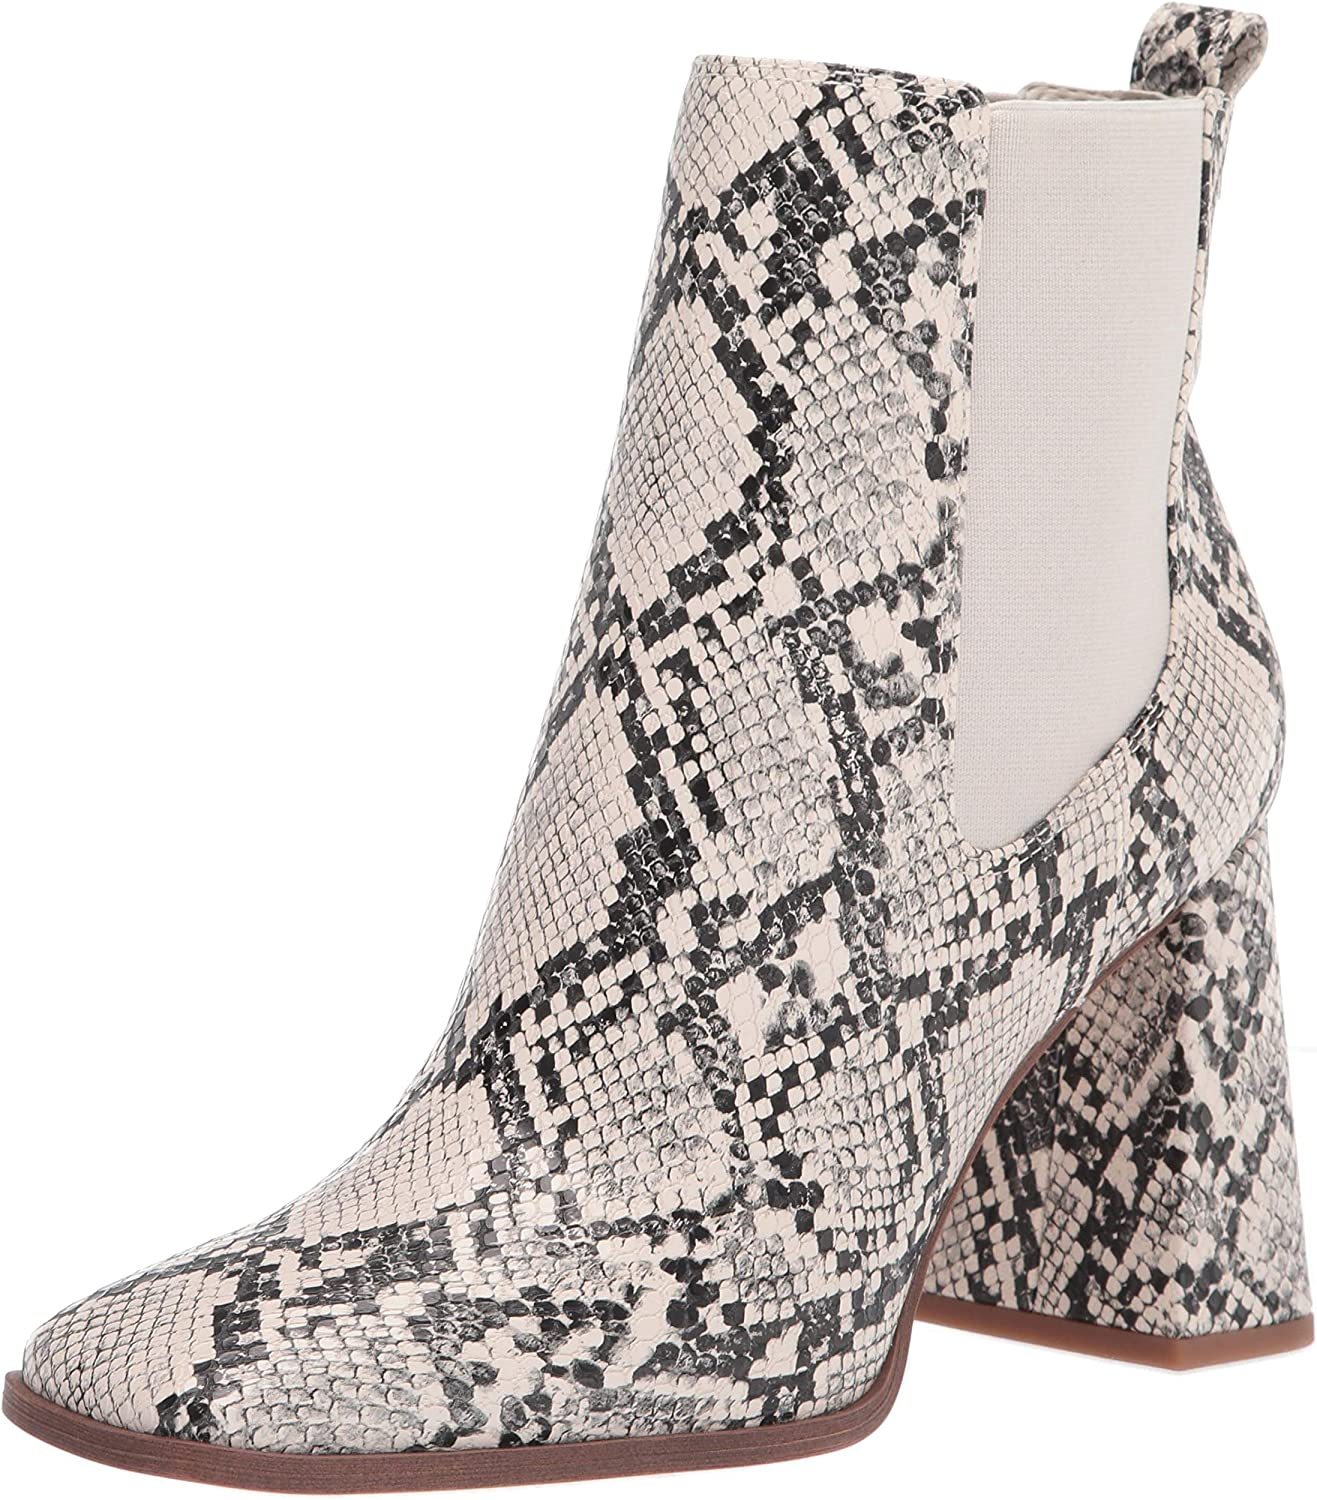 Circus Excellence by Max 80% OFF Sam Edelman Ankle Boot Polly Women's